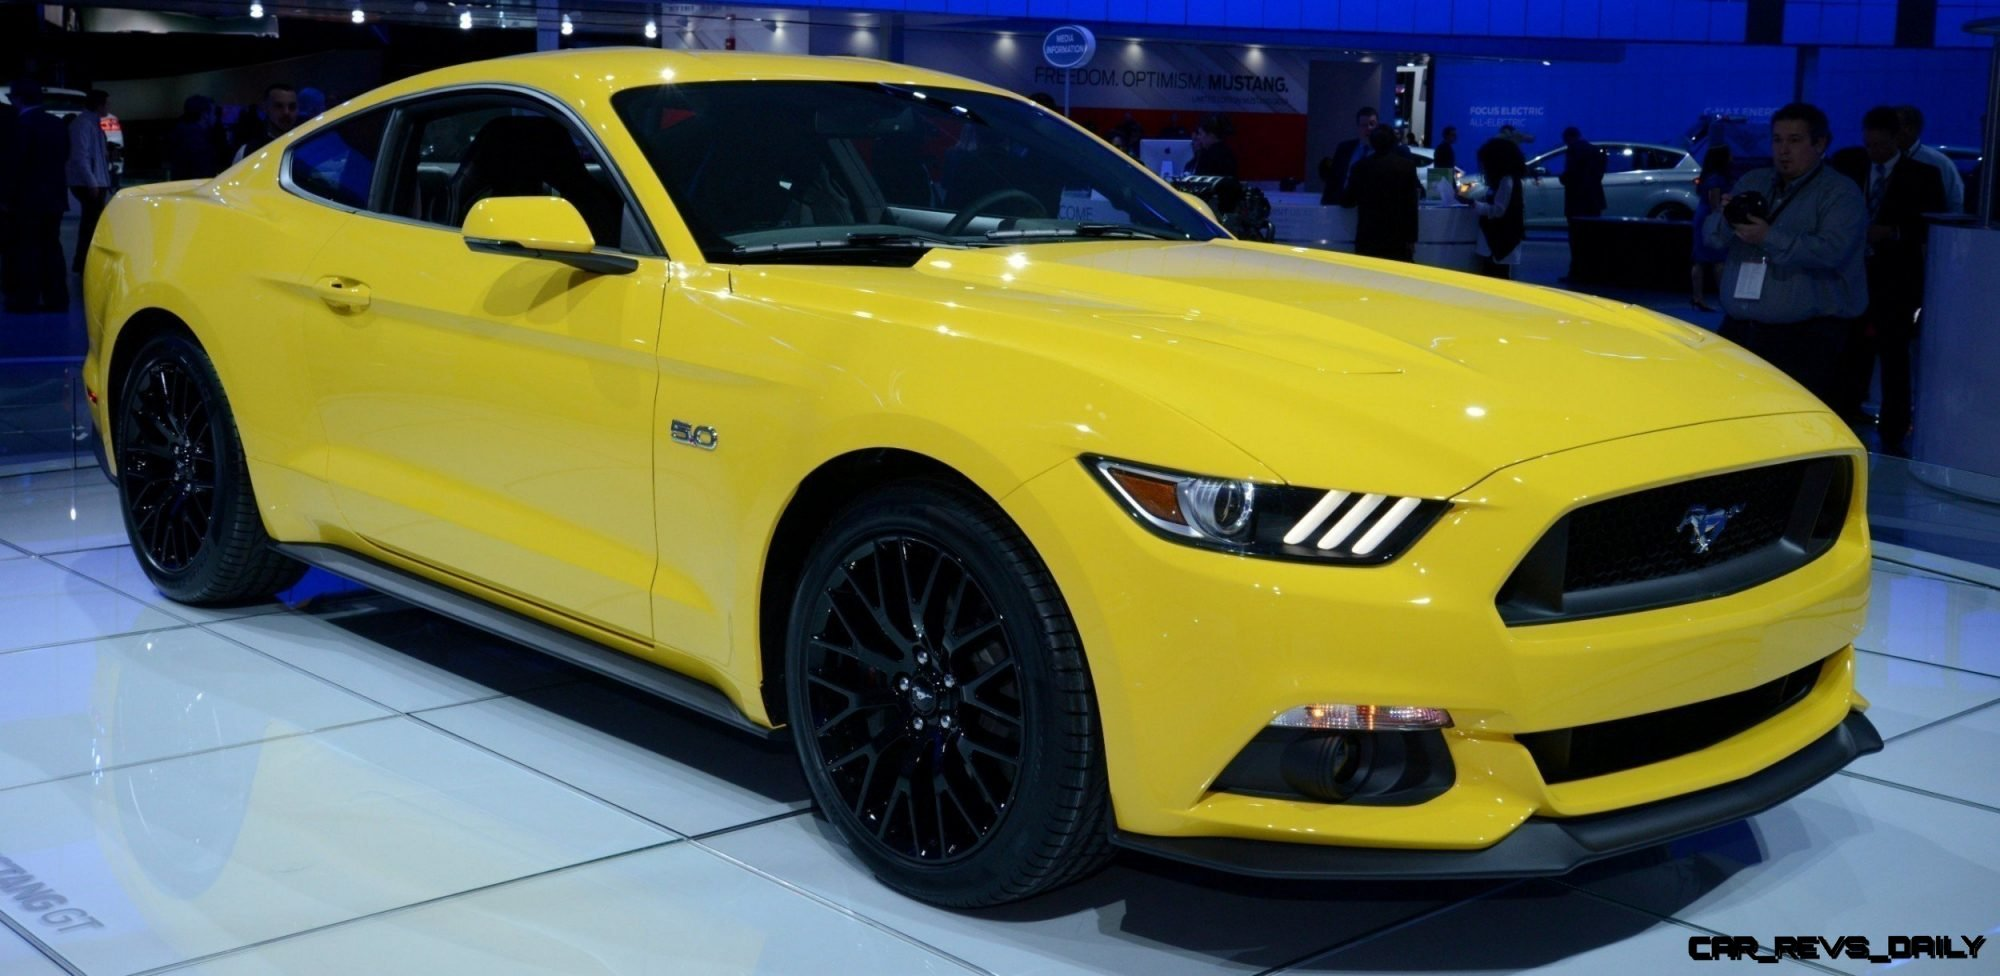 2015 Ford Mustang GT Mean Lean and Ready To Brawl in Latest Real Life Photos Yellow GT 18 photo